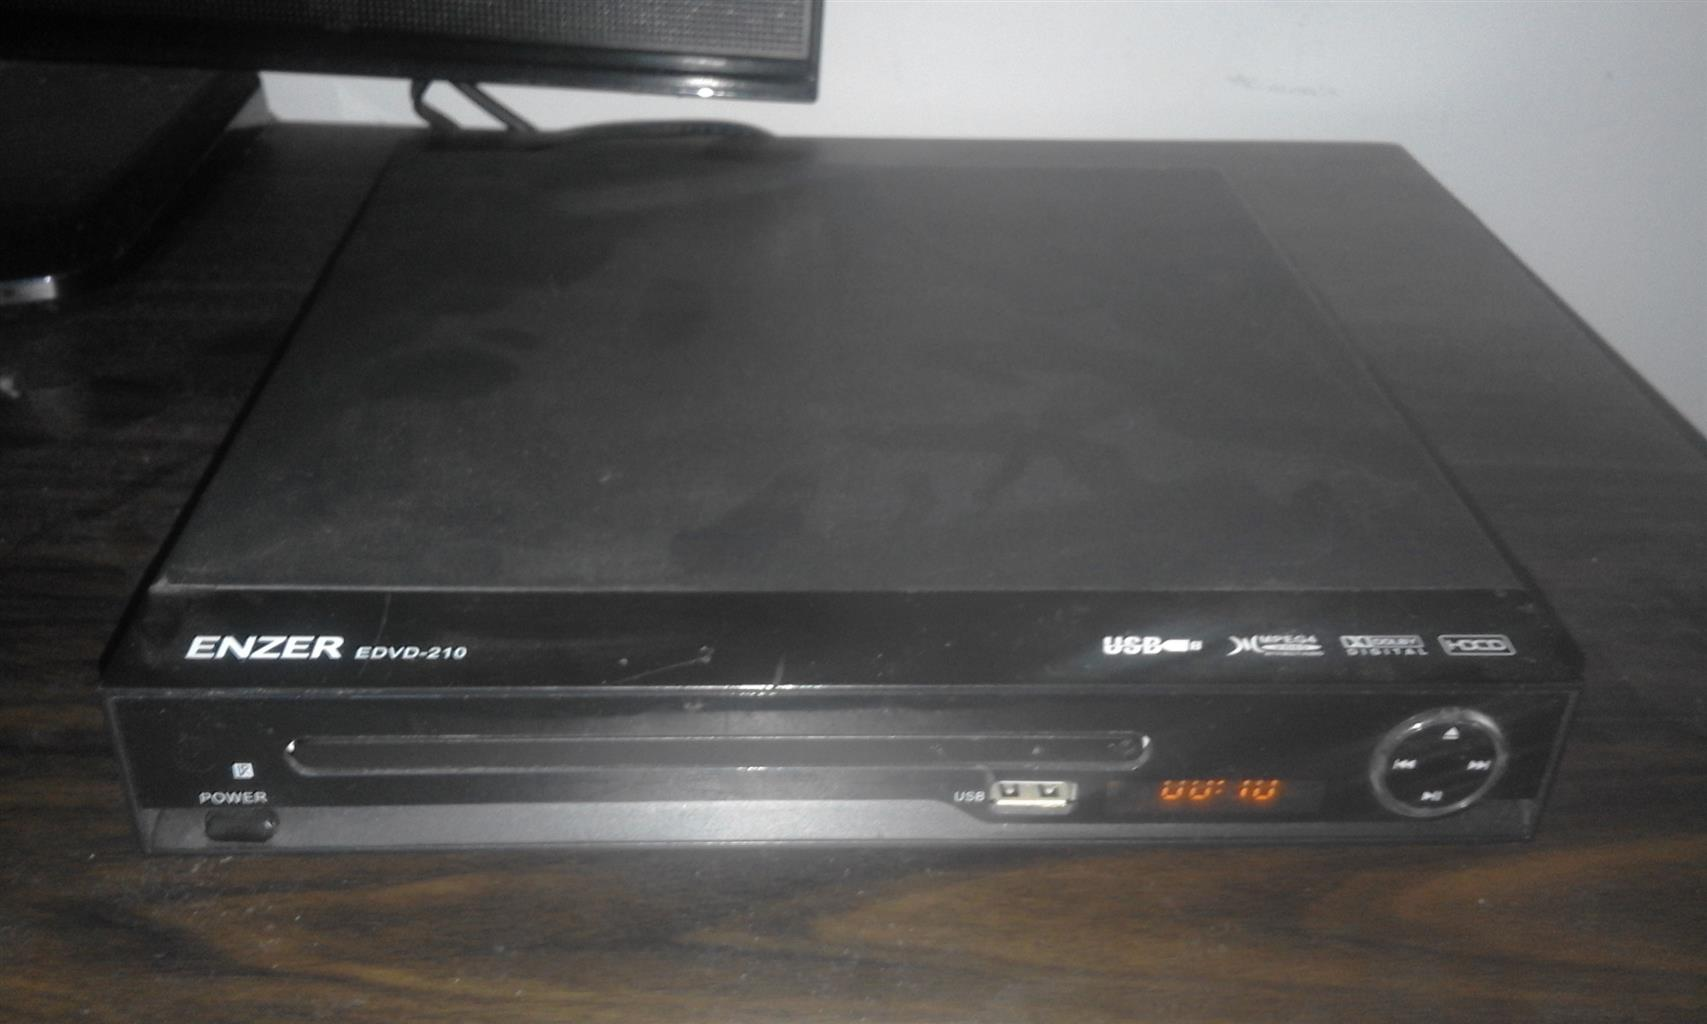 DVD Player Enzer including remote control.